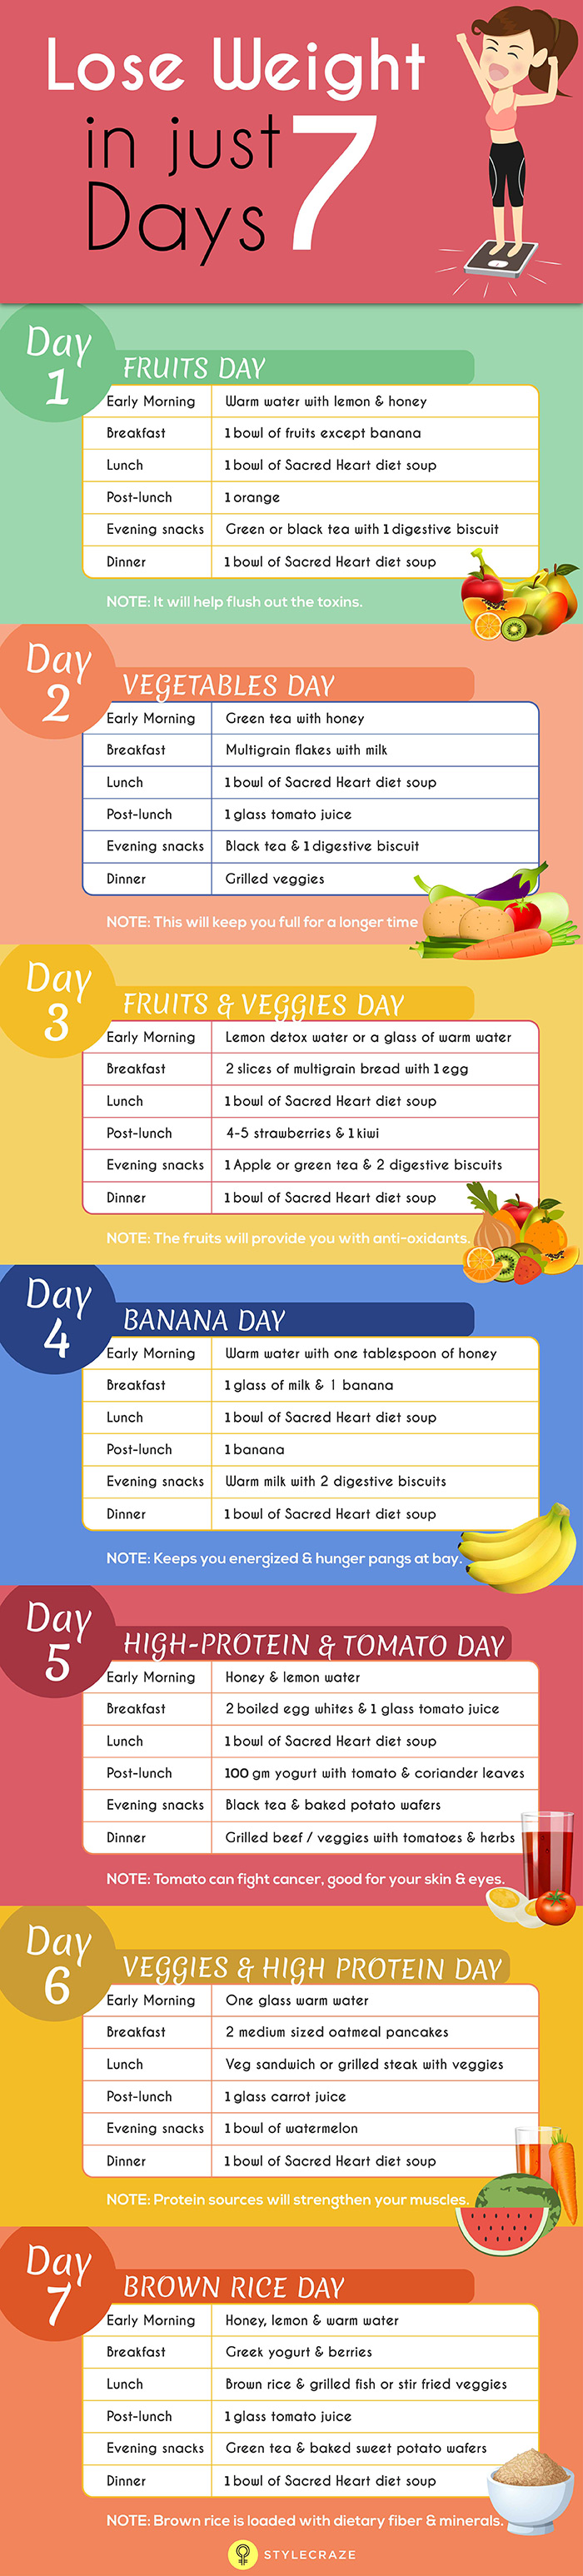 Heart Healthy Diet To Lose Weight